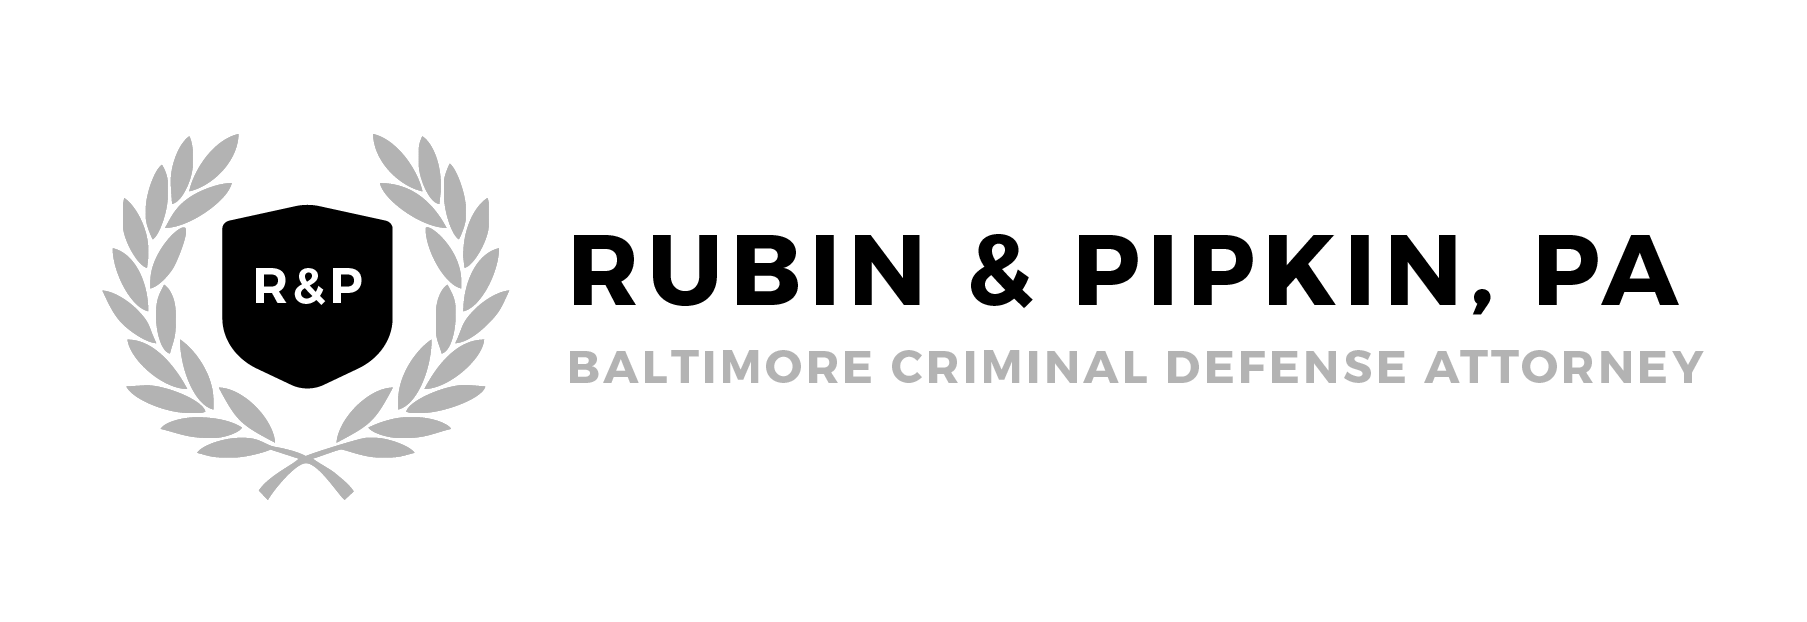 Drug Paraphernalia Charges in Baltimore, MD - Staci L  Pipkin